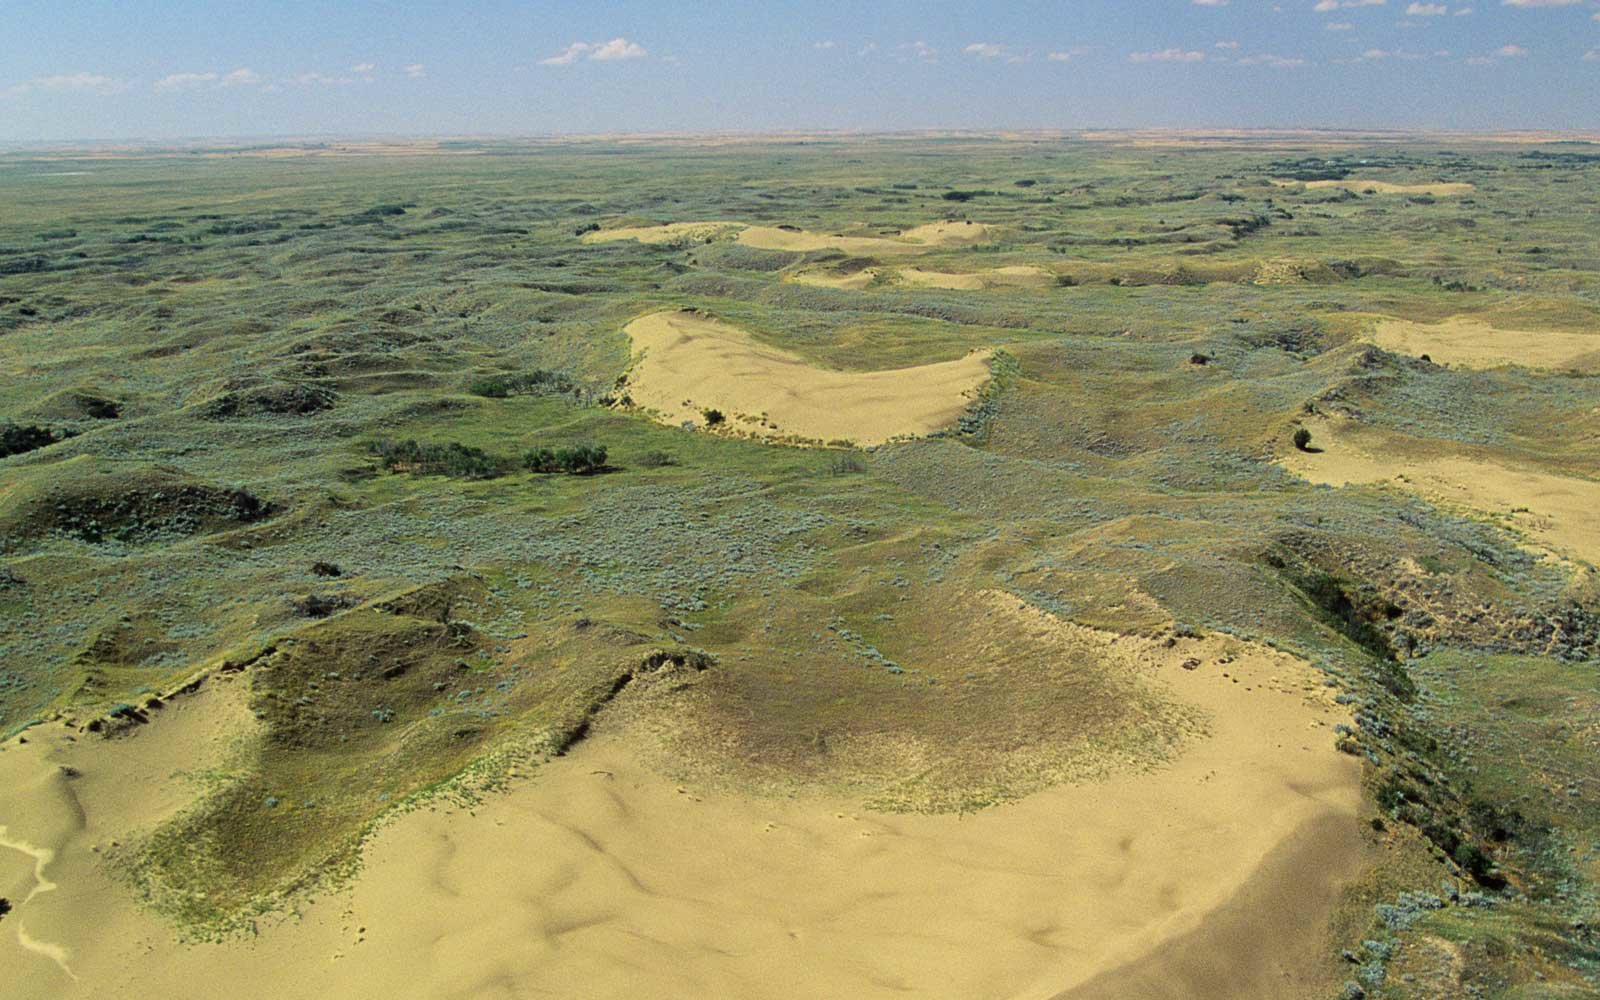 Aerial of the Athabasca Sand Dunes, Saskatchewan, Canada.